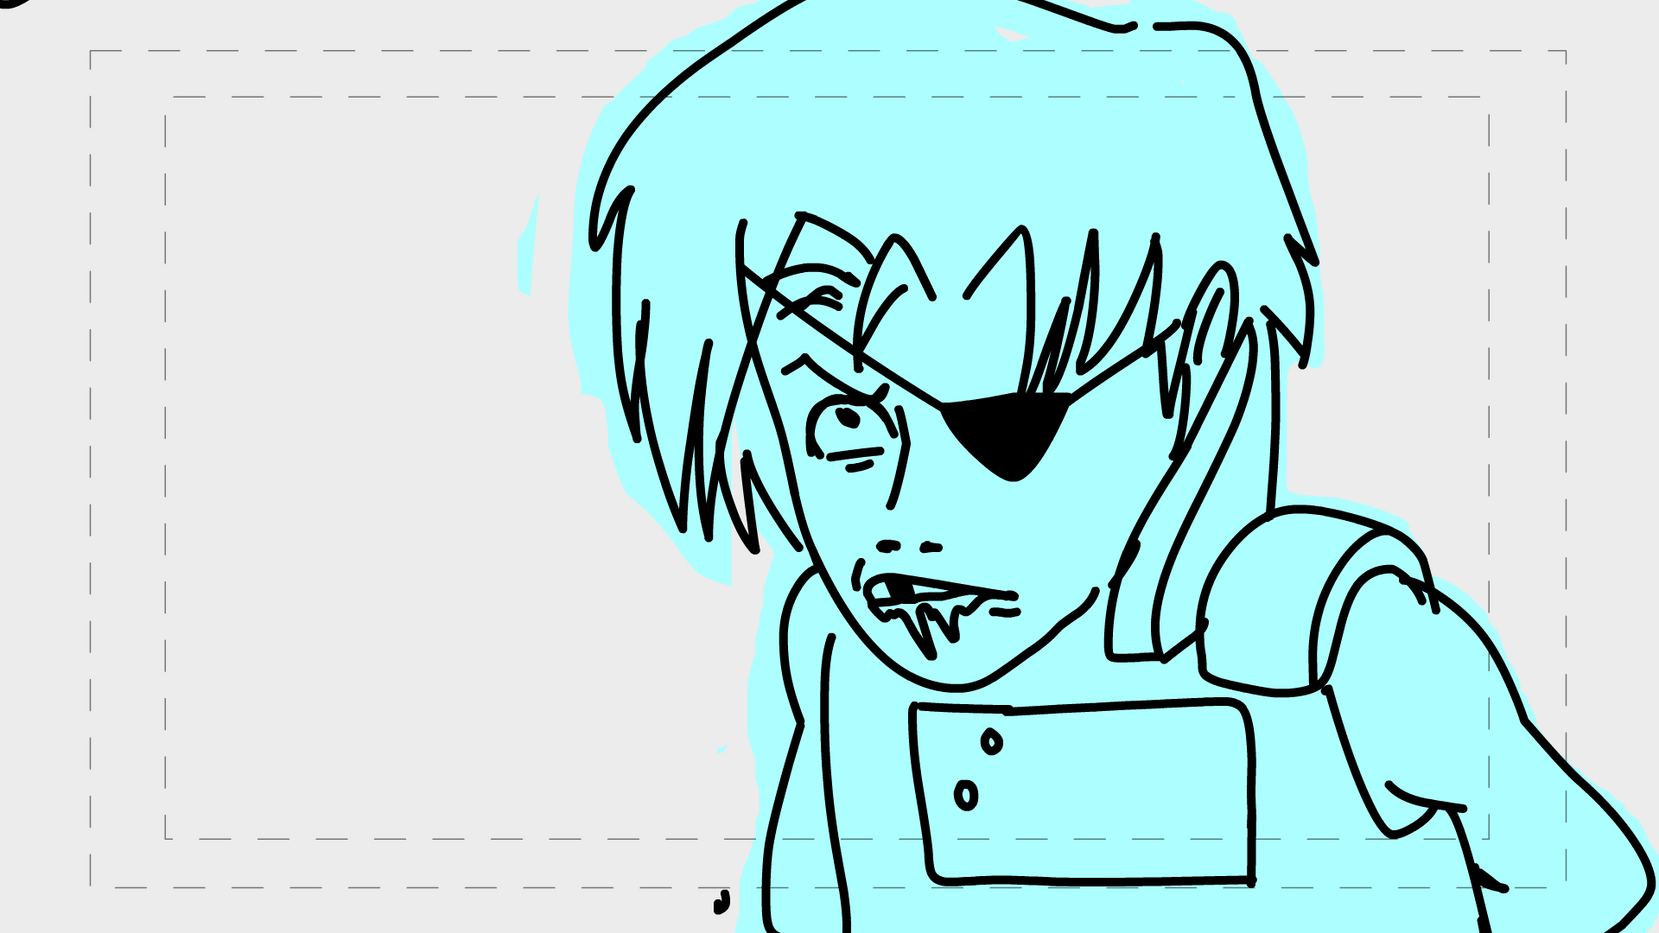 Storyboards_06_0304.png